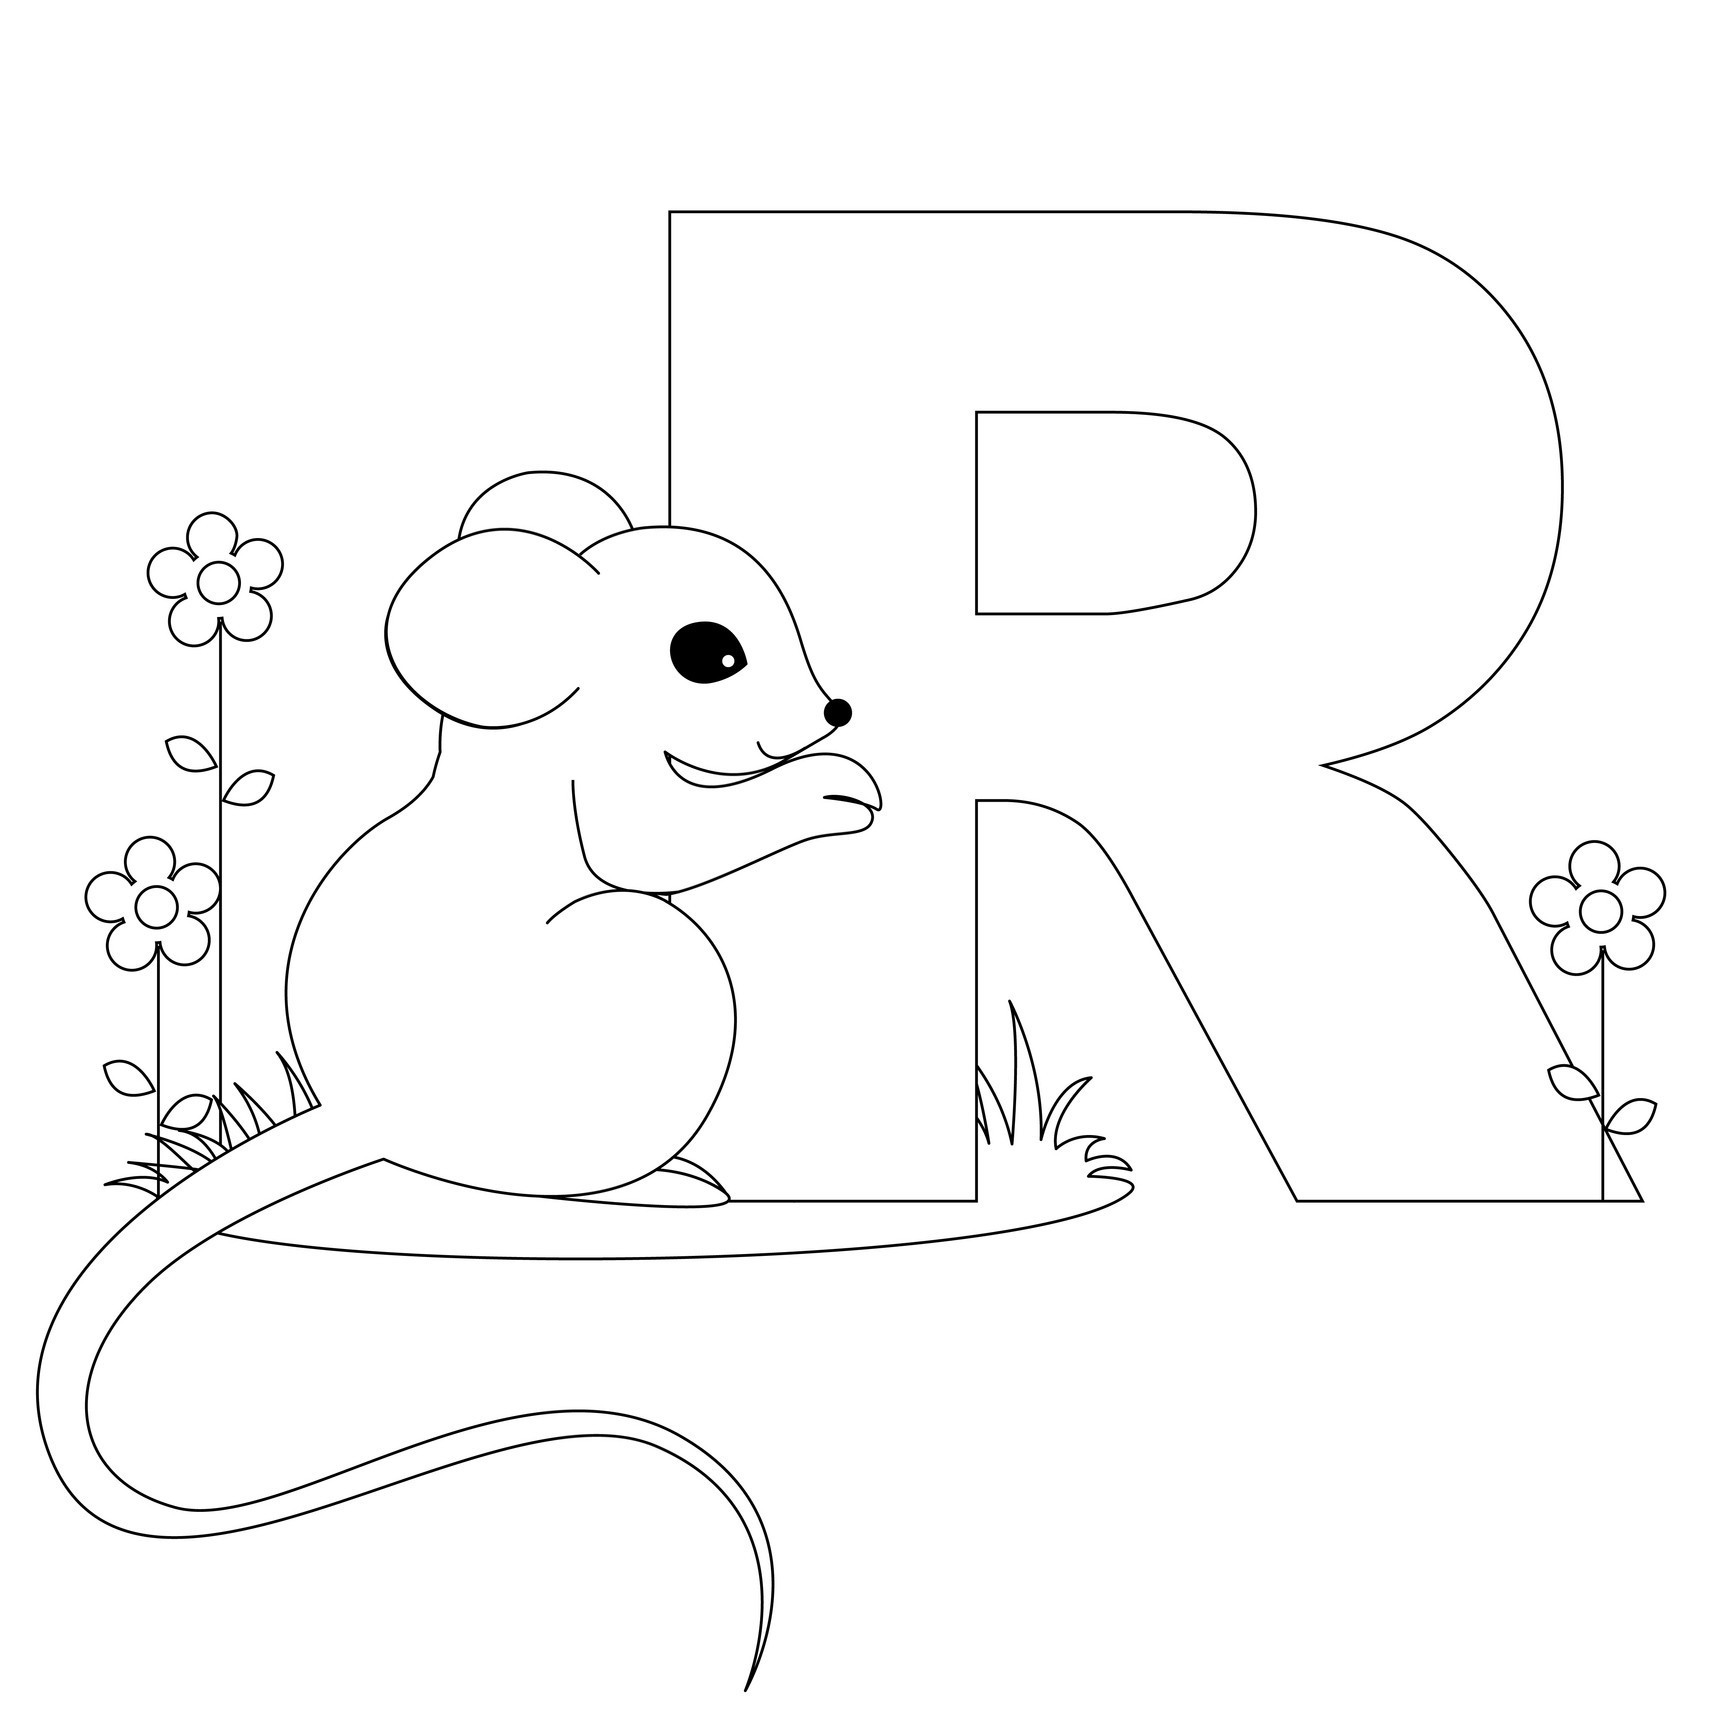 Coloring Pages For Kids Letters  Free Printable Alphabet Coloring Pages for Kids Best